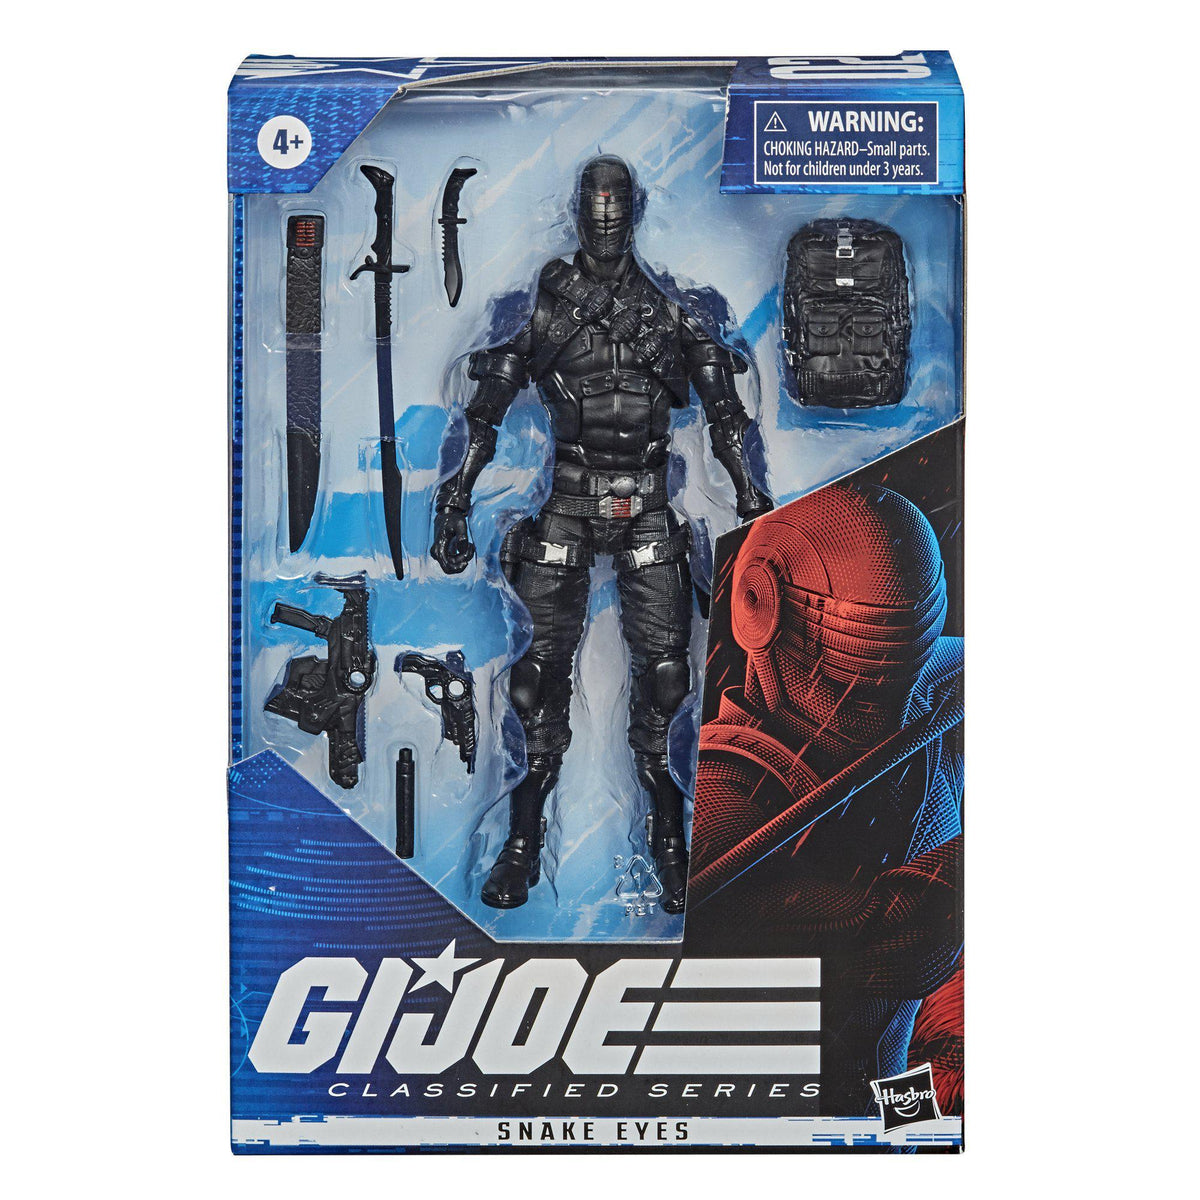 G.I. JOE CLASSIFIED SERIES - SNAKE EYES ACTION FIGURE